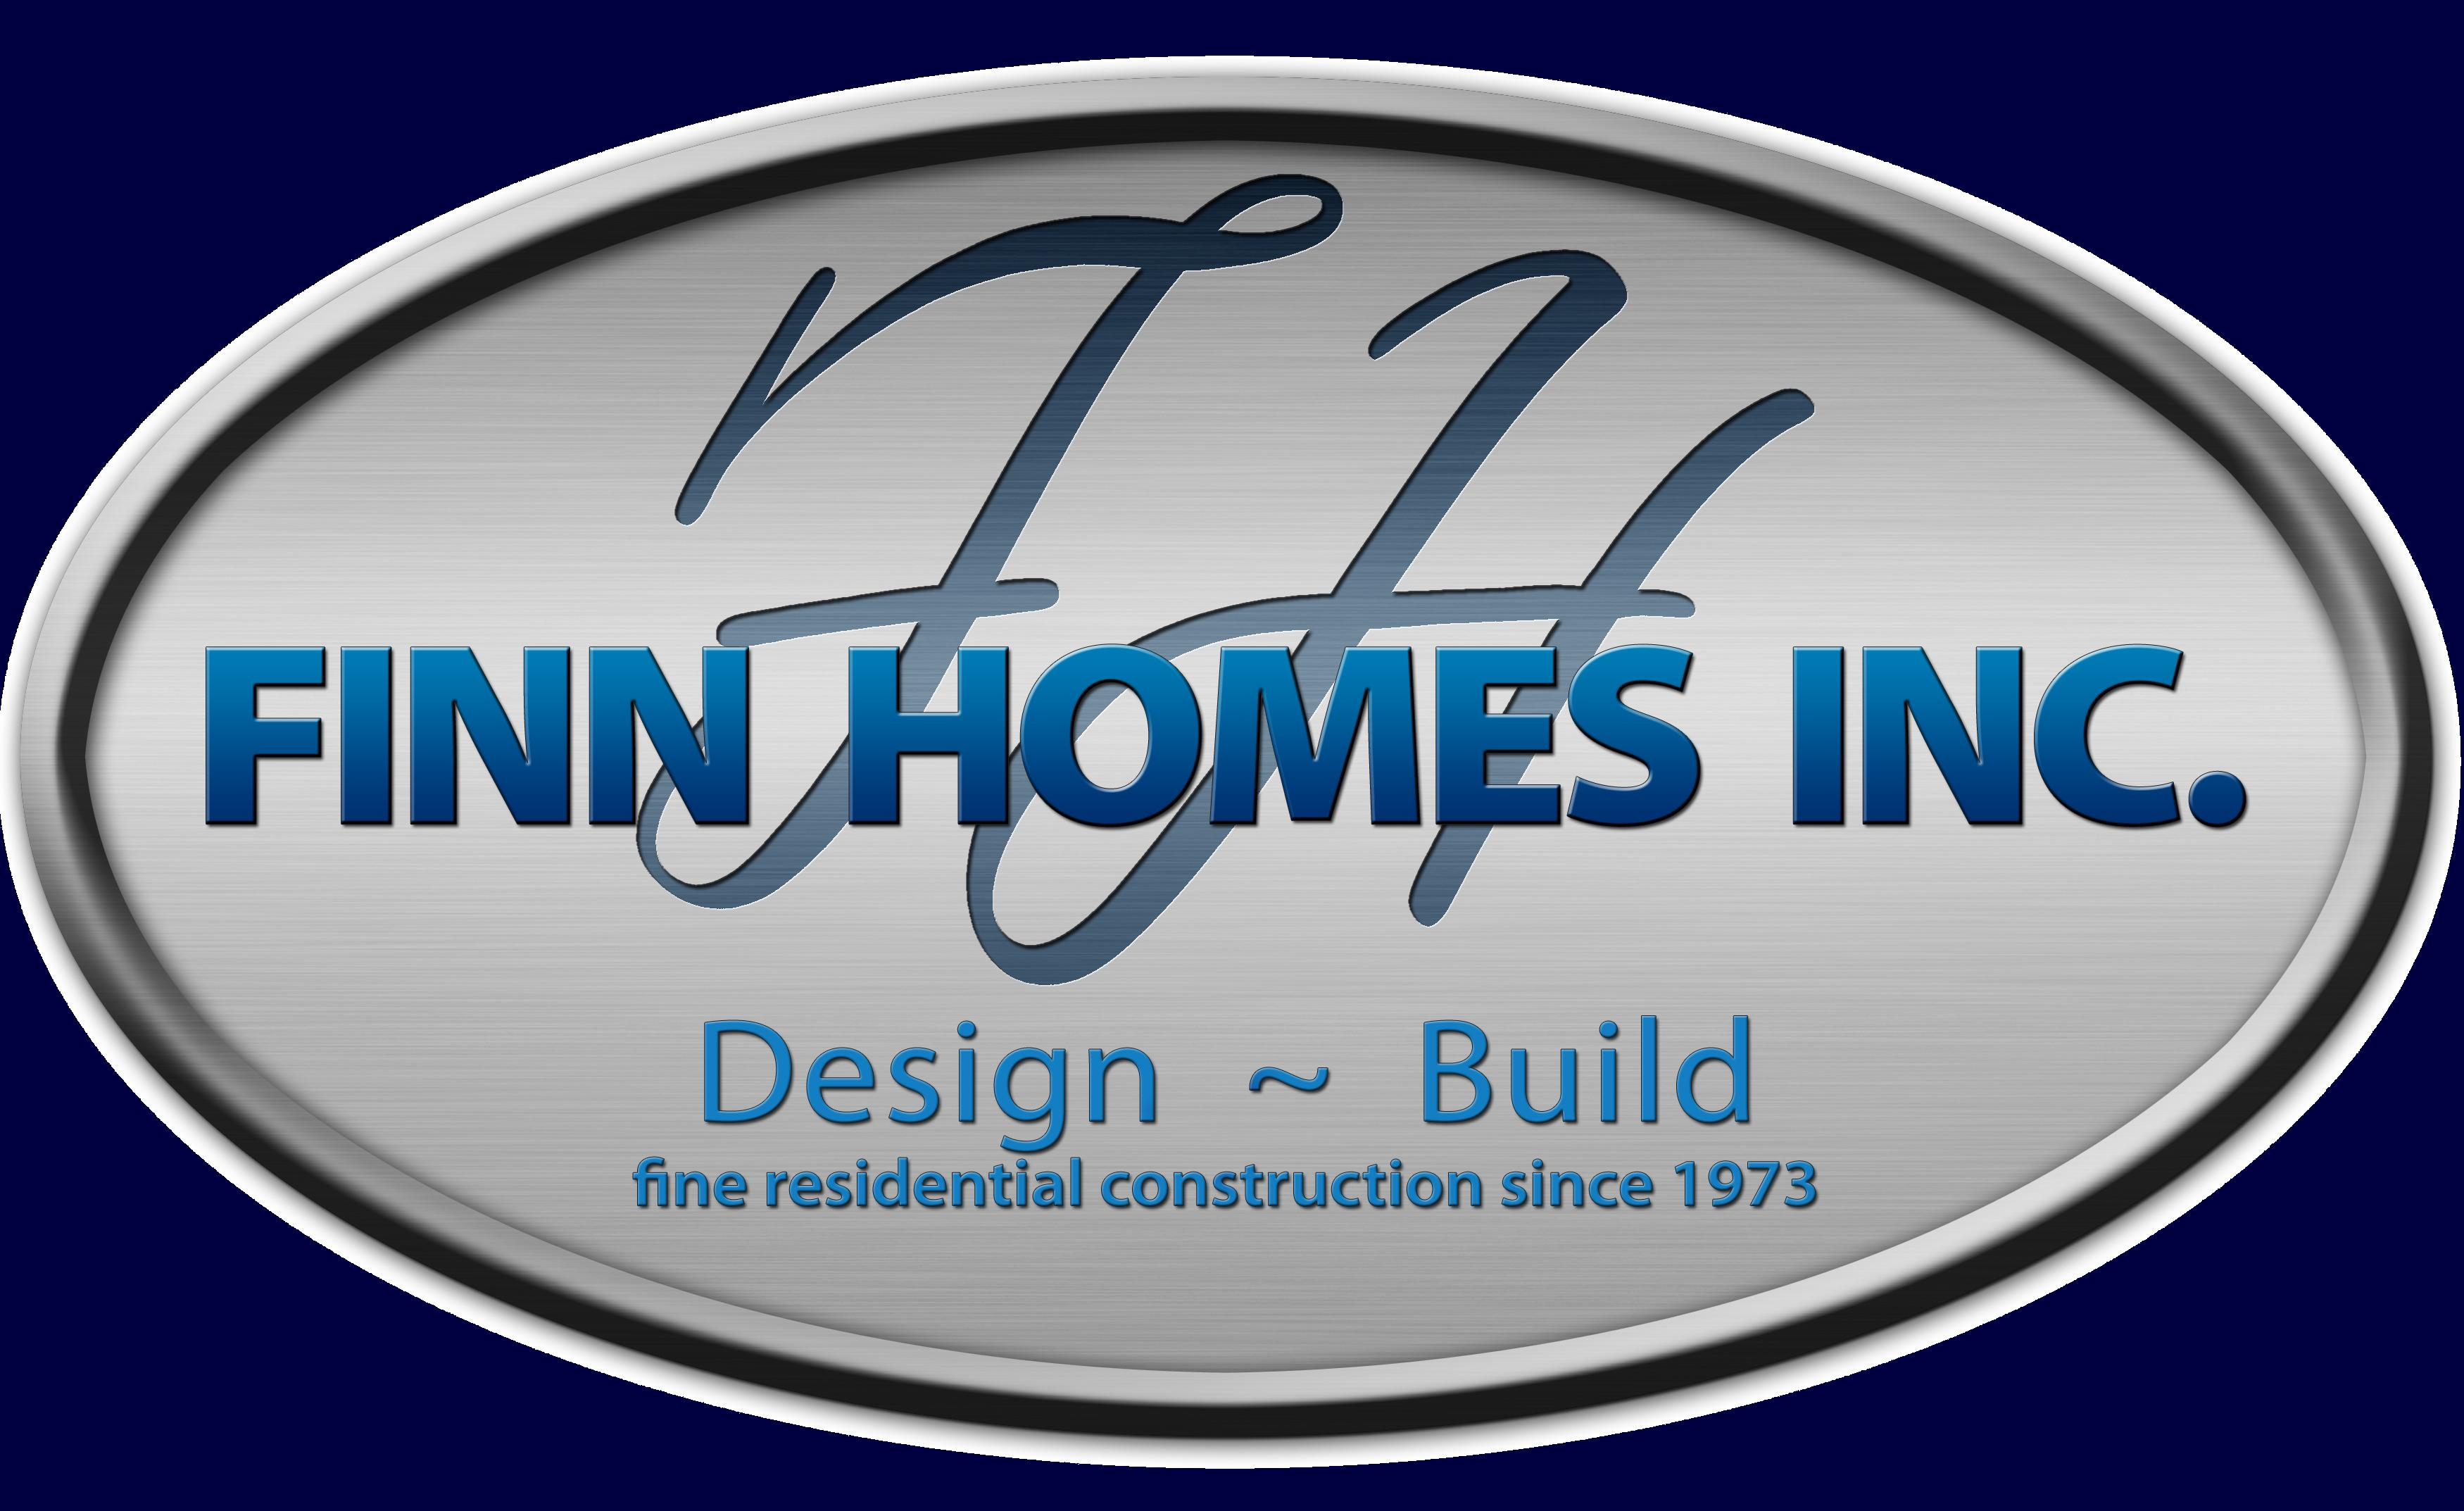 Finn Homes - Building Since 1973